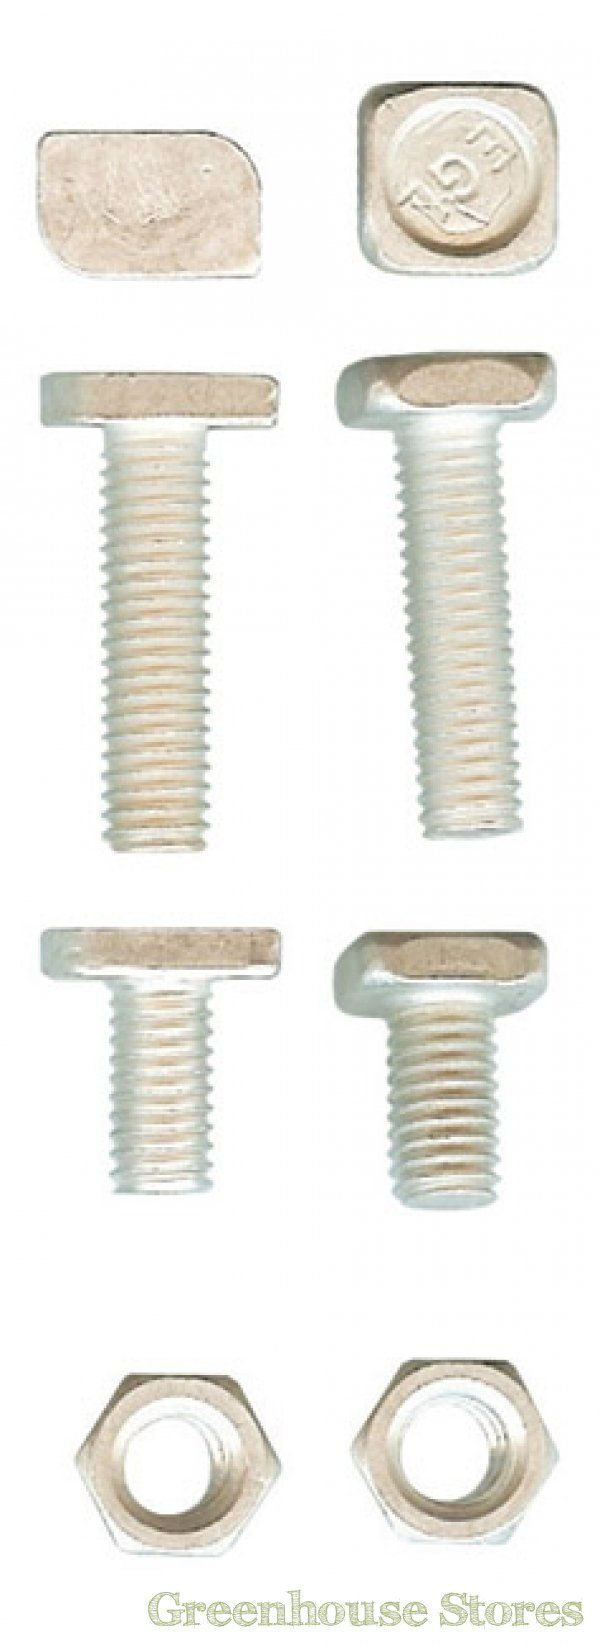 Elite Greenhouse Nuts And Bolts   http://www.greenhousestores.co.uk/Elite-Nuts-and-Bolts-Full-Head-22mm-Pack-of-50.htm